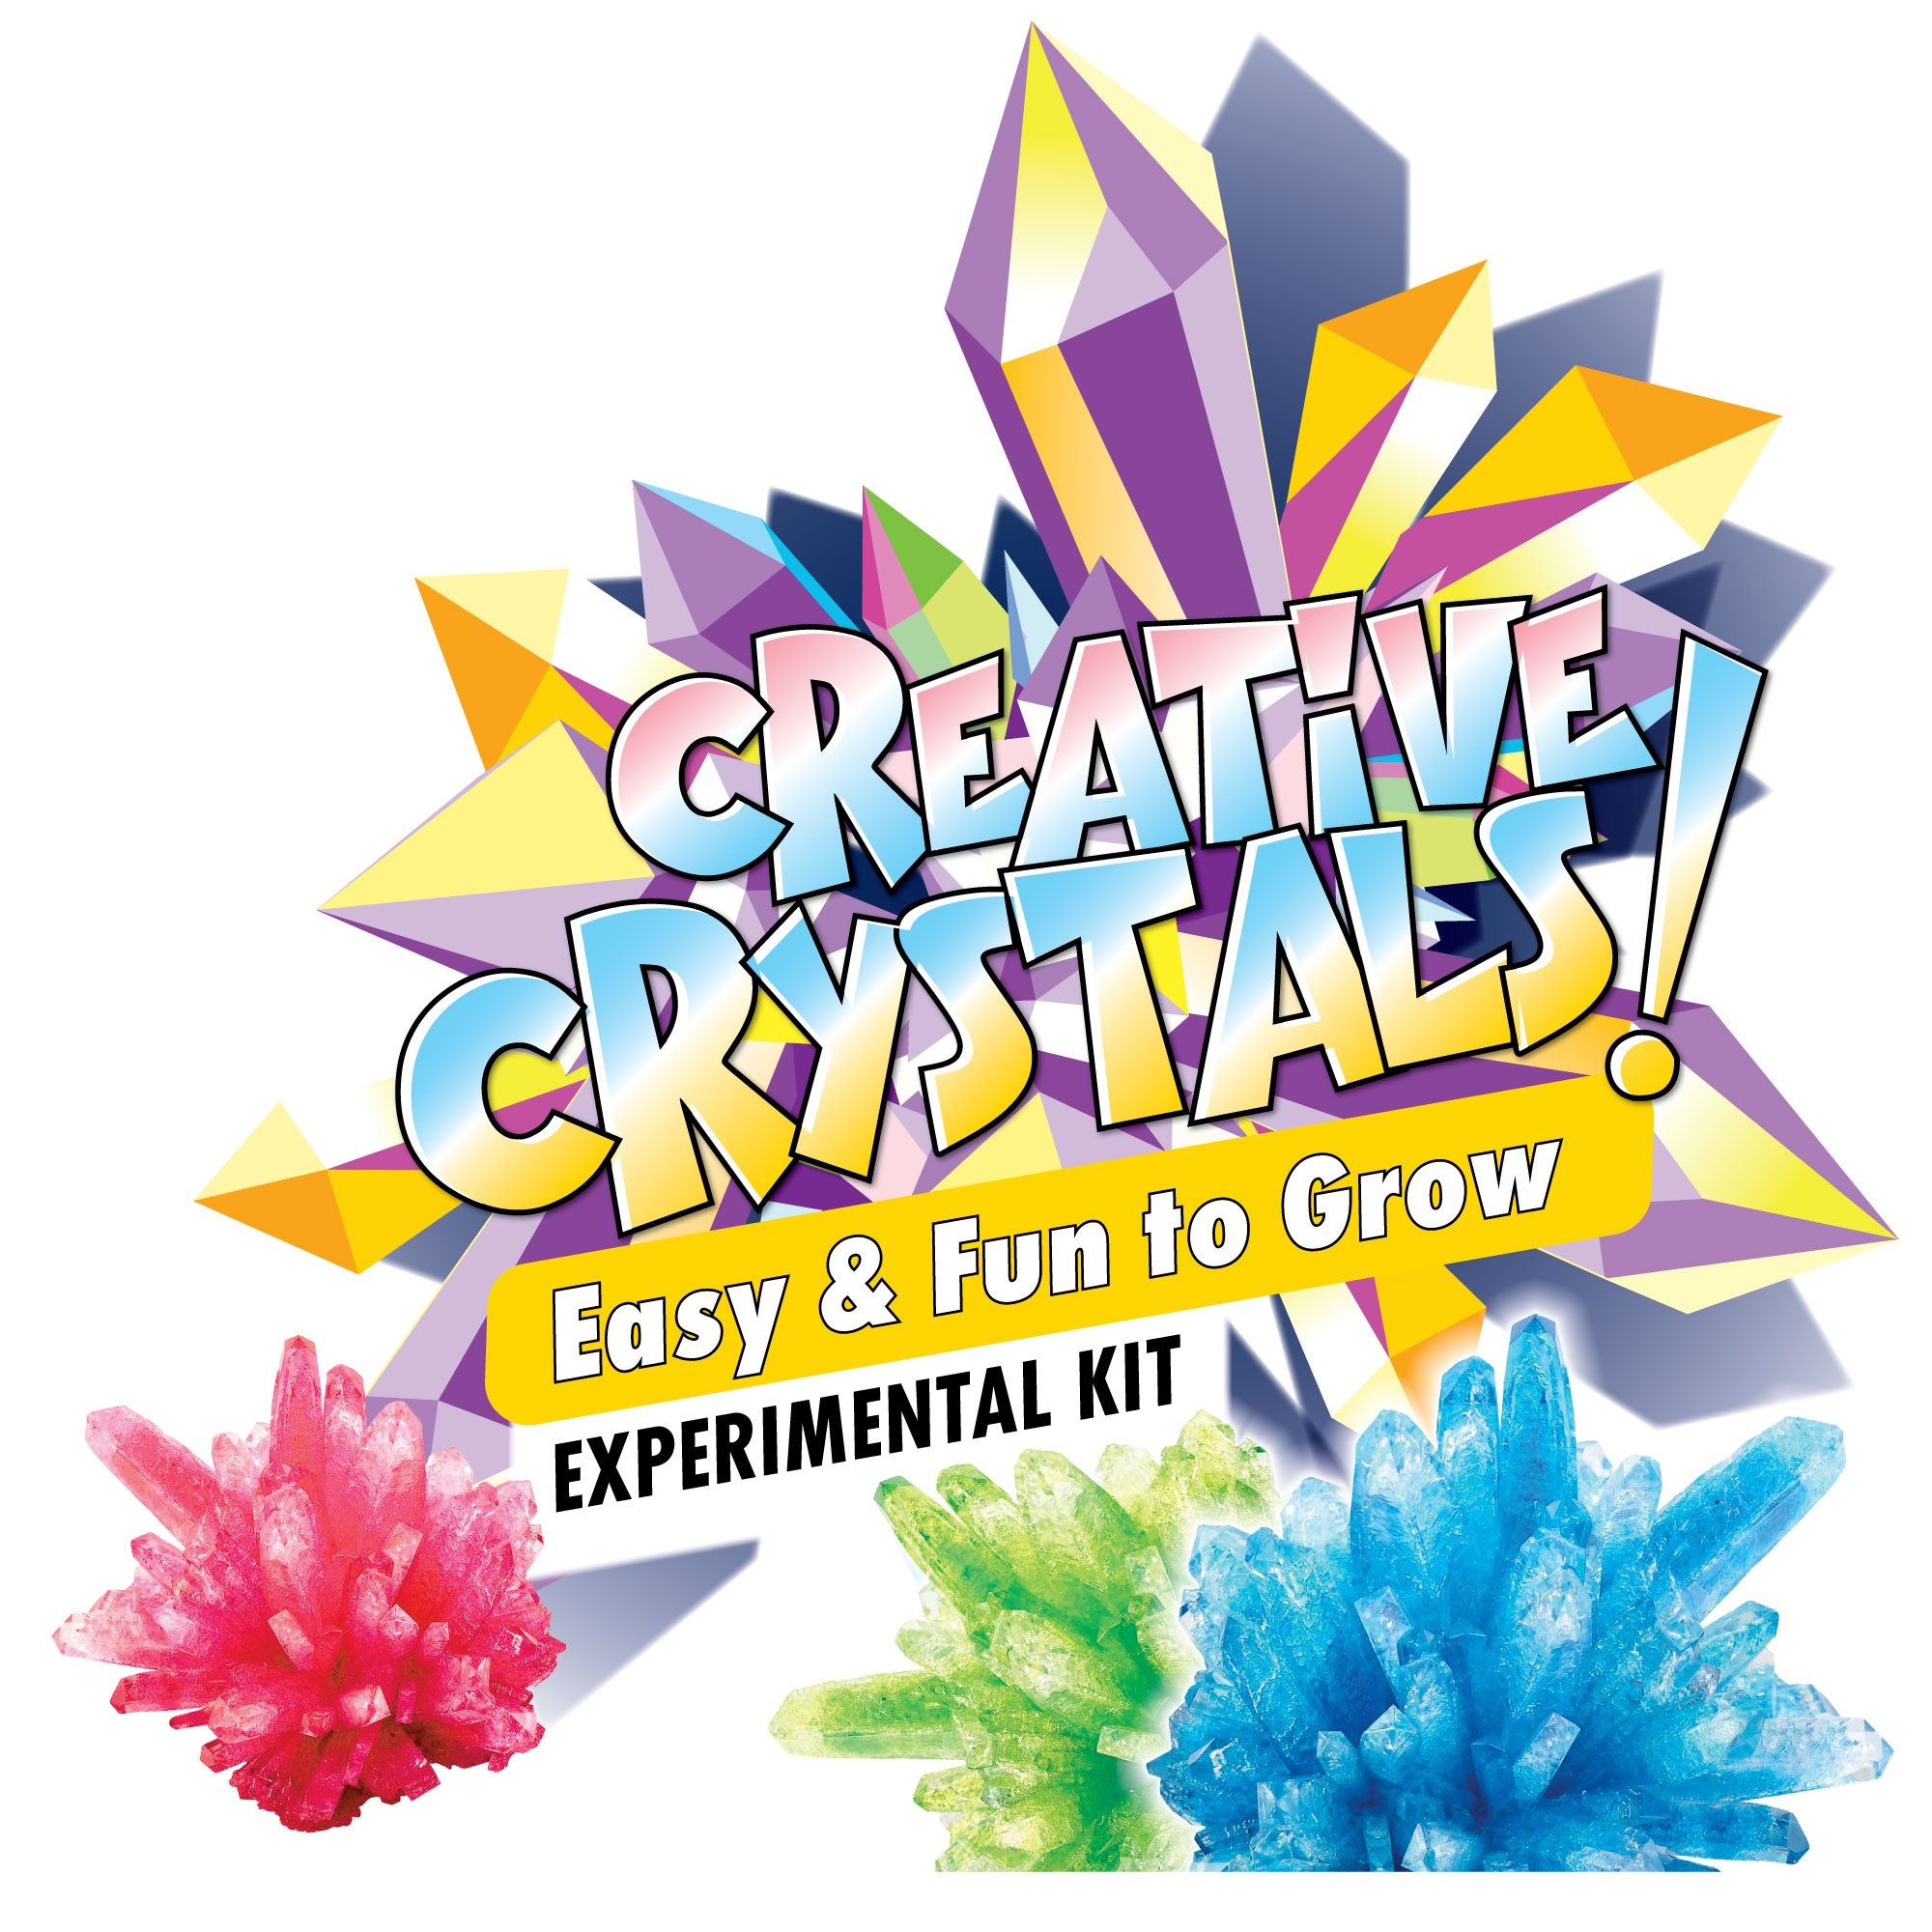 Learn & Climb Crystal Science Kit Kids Ages 5 to 7 - 6 Cool Experiments, Crystal Growing Set Kids Step Step Instruction Manual – Everything Included